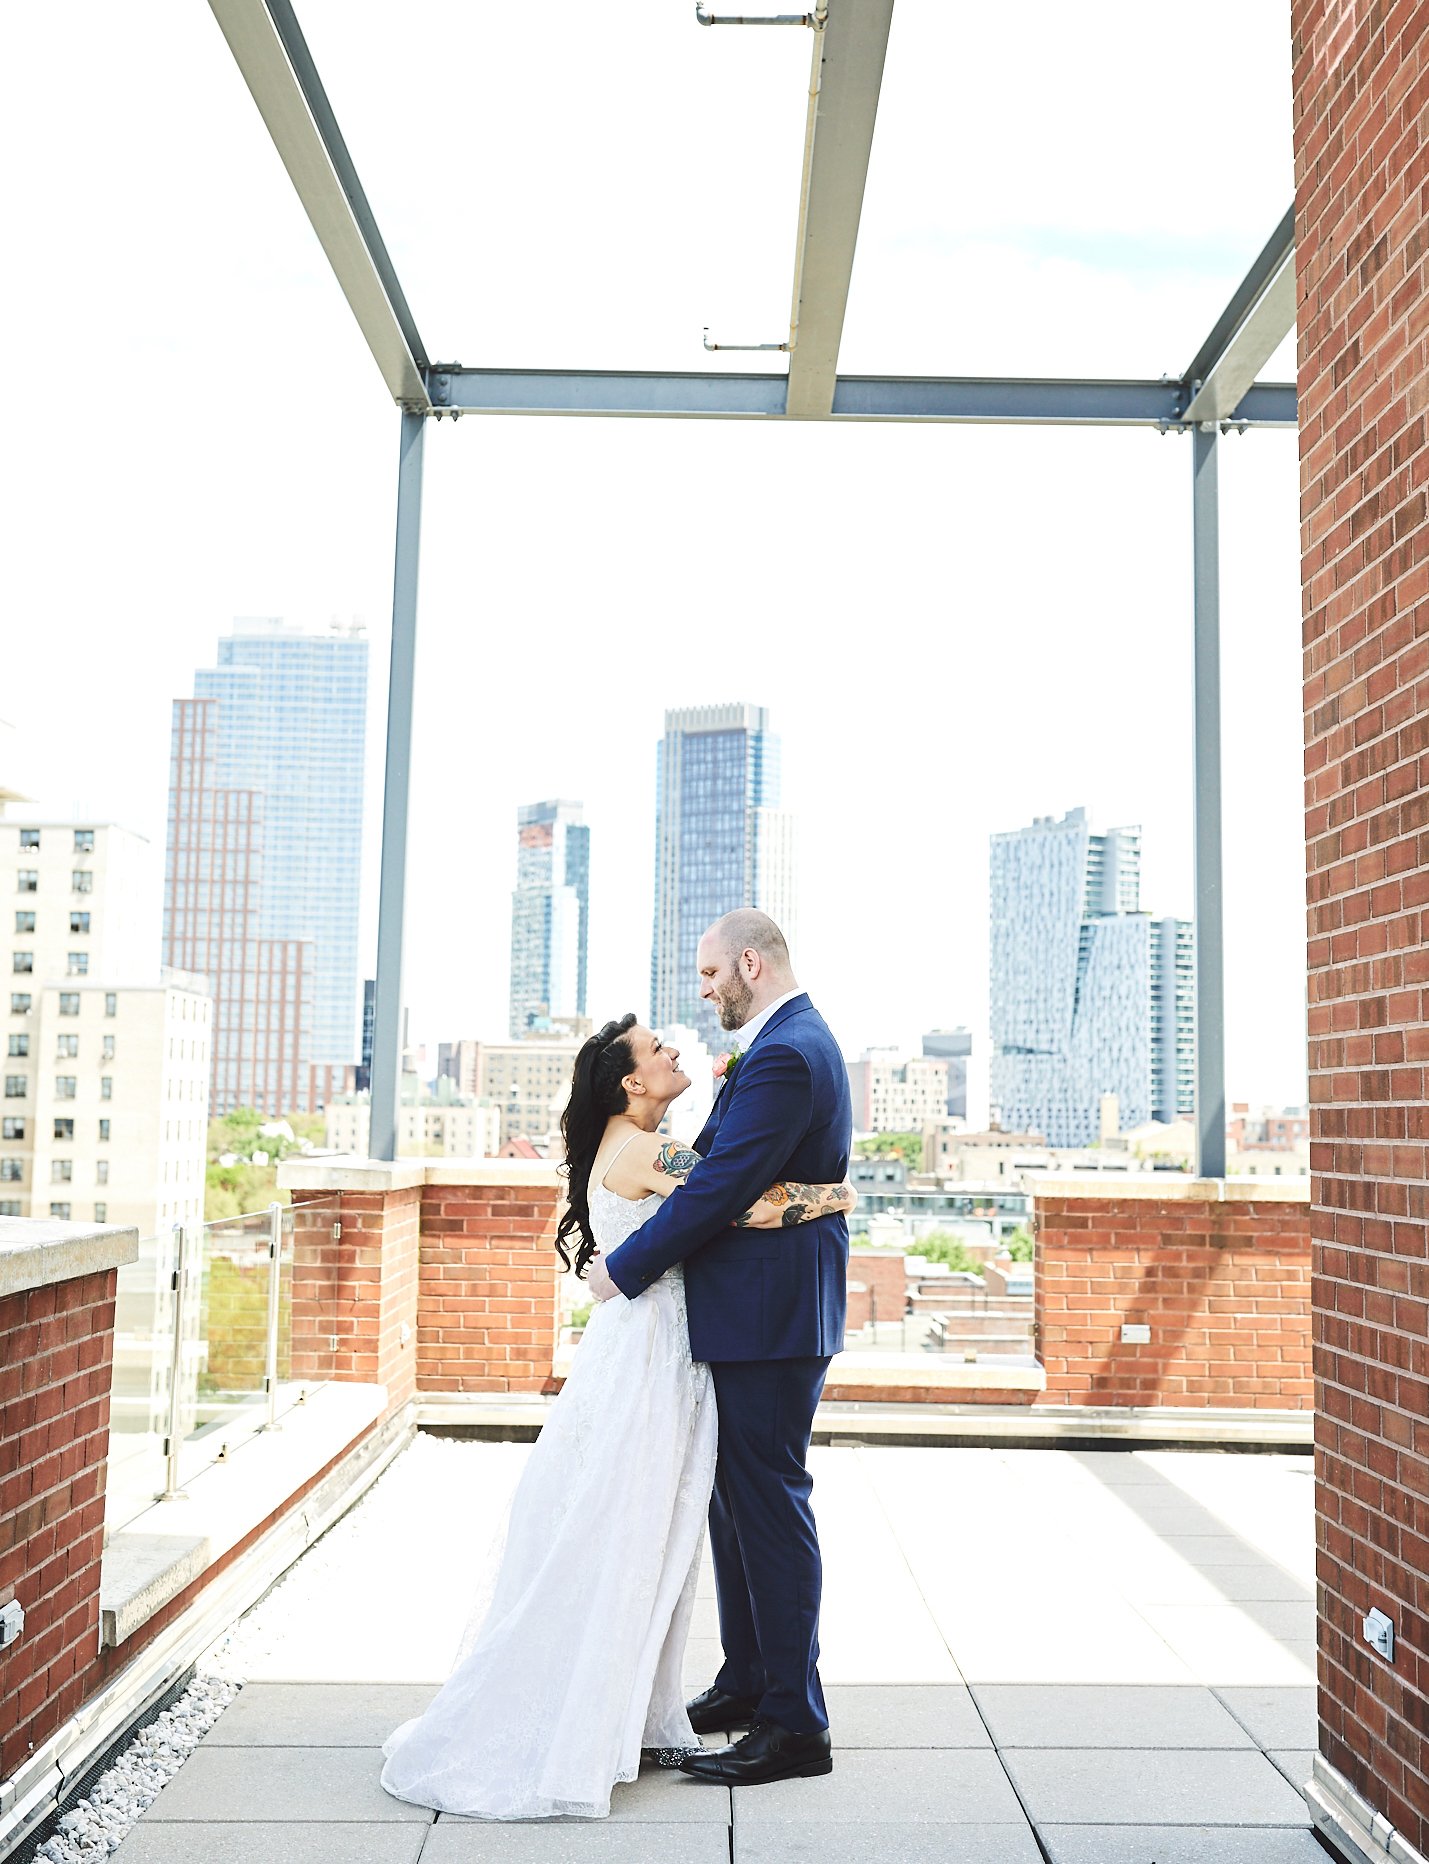 190518_SpringThreesBreweryWedding_By_BriJohnsonWeddings_0049.jpg